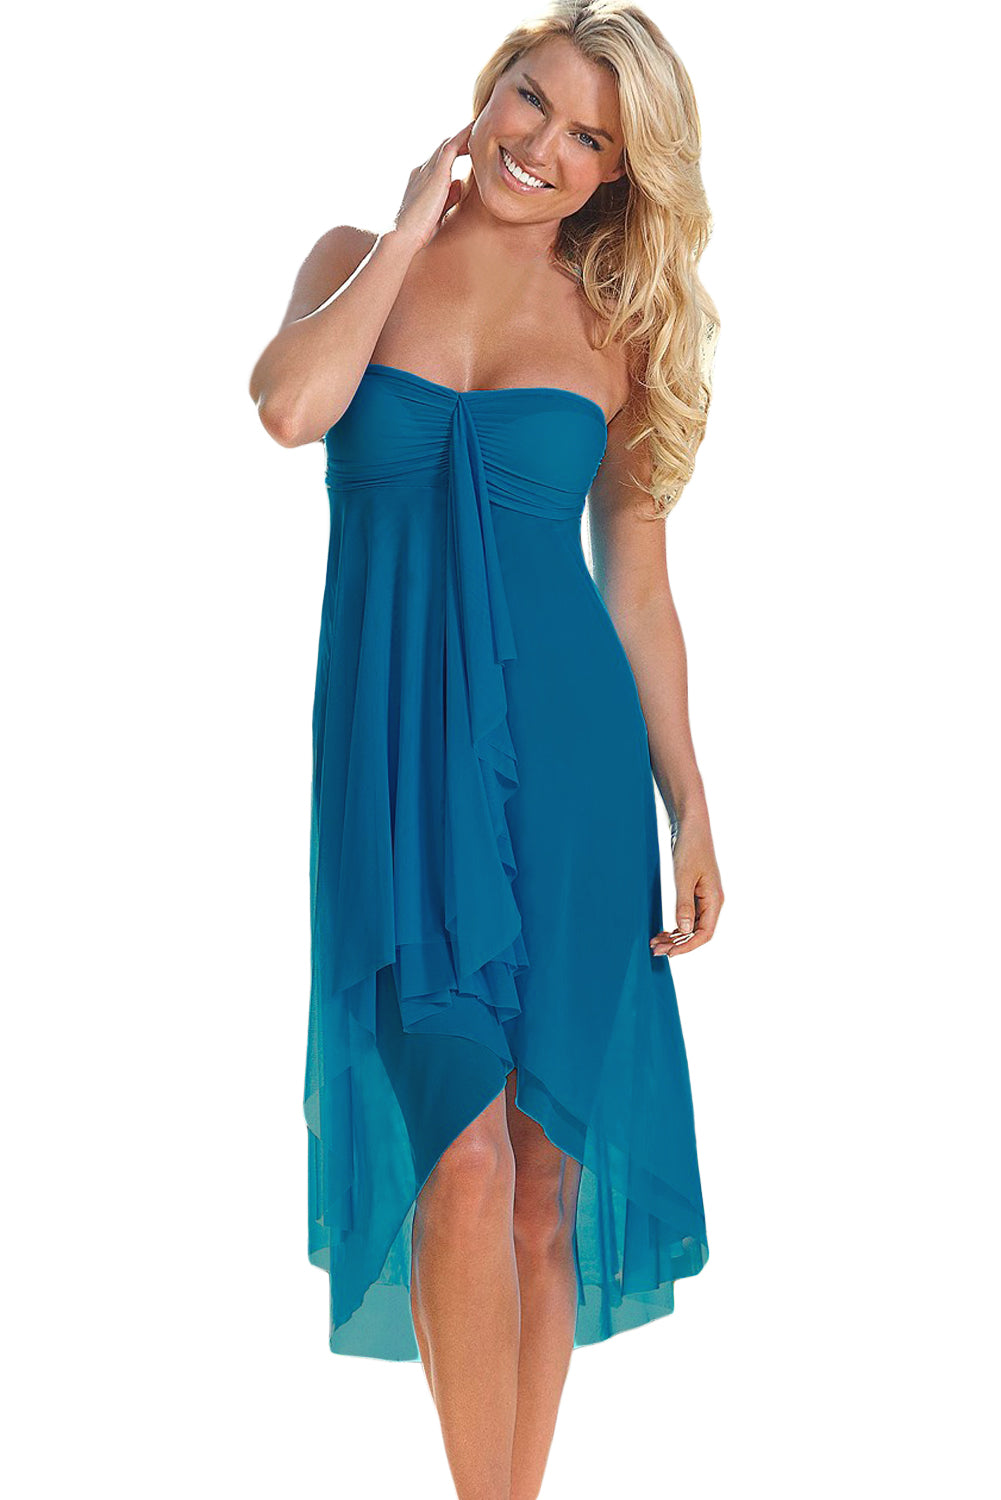 Her Flowing Drape Style Beach Dress Blue Convertible Cover Up